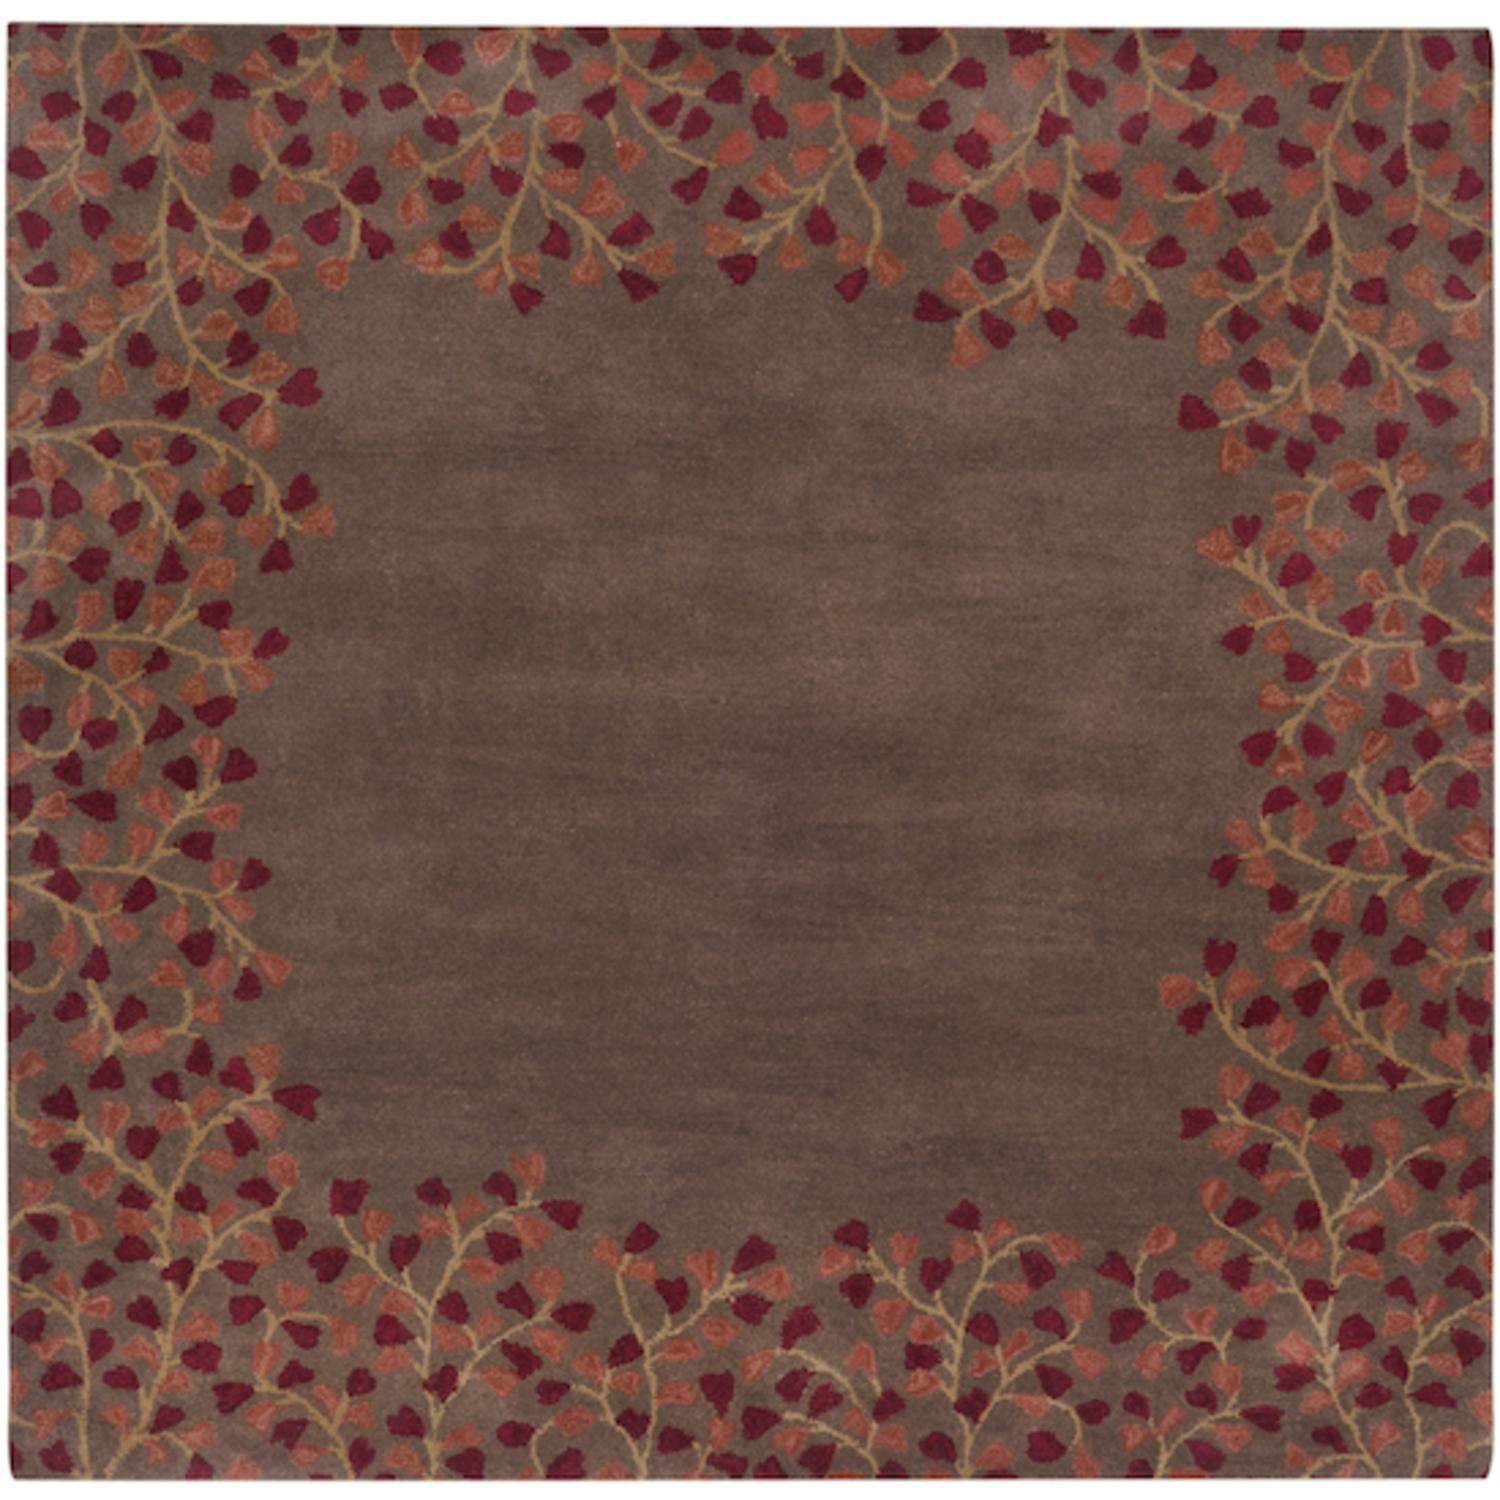 6' x 6' Enchanted Weald Maroon Red and Brown Sugar Wool Square Area Throw Rug